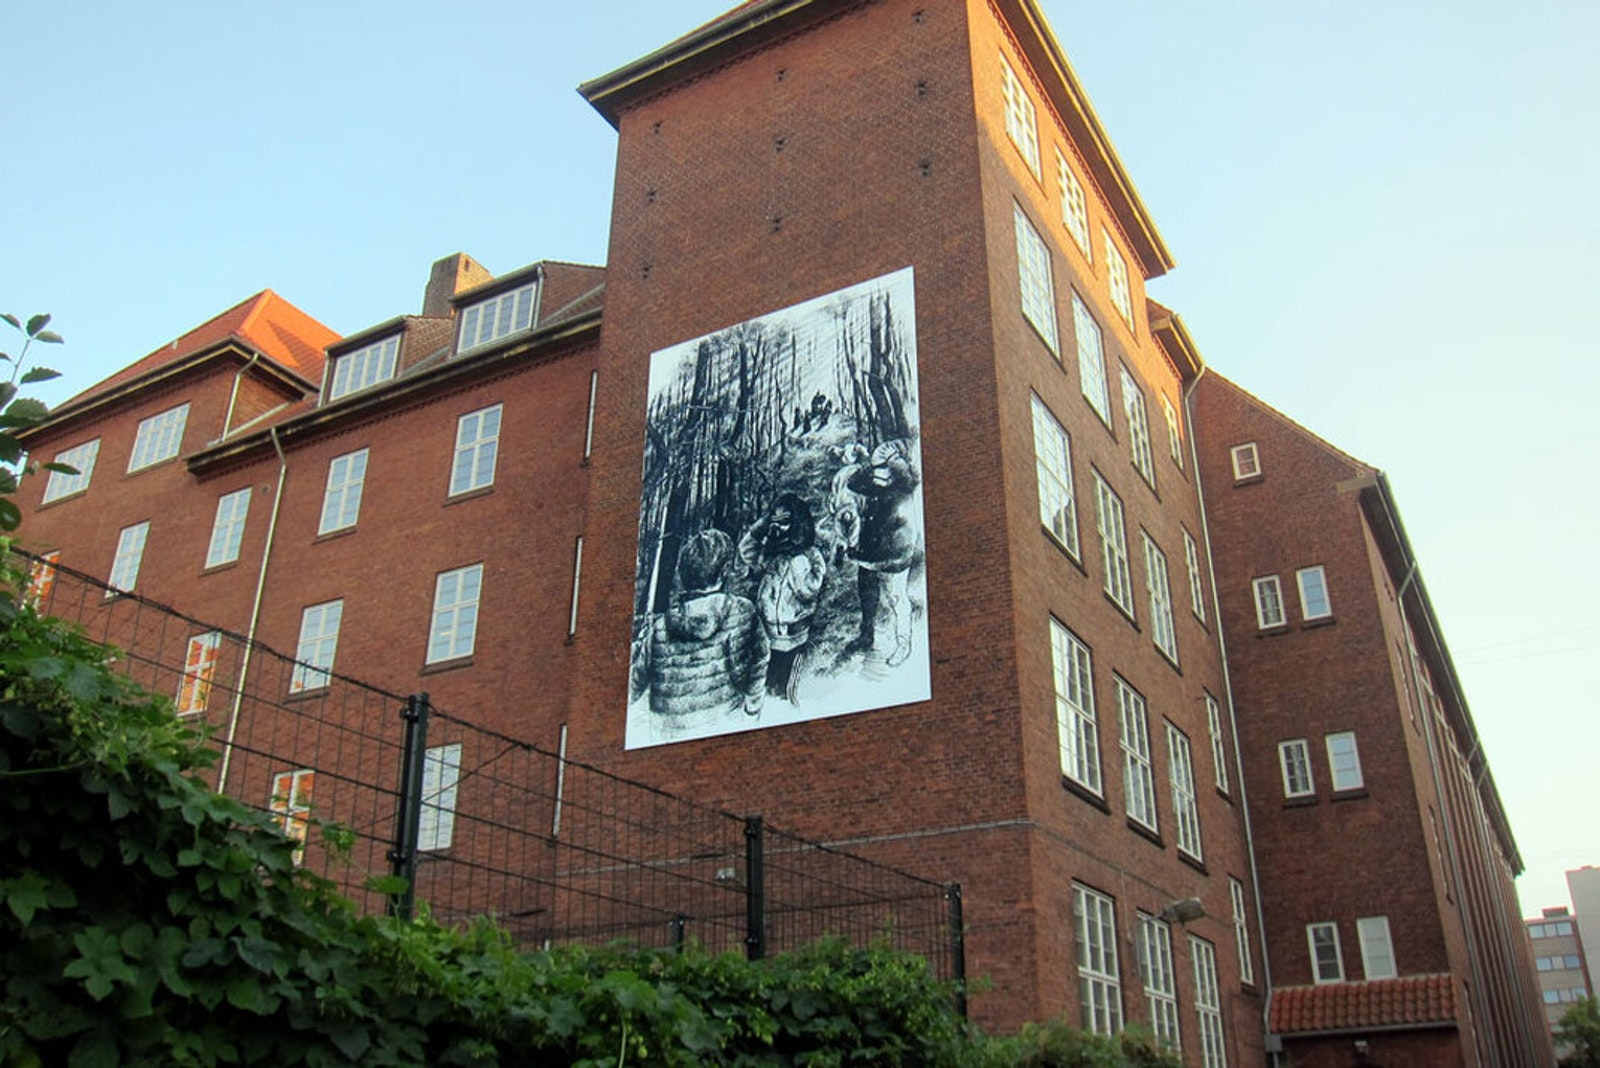 Large scale mural by Thomas Pålsson at Vesterbro Ny Skole in Copenhagen